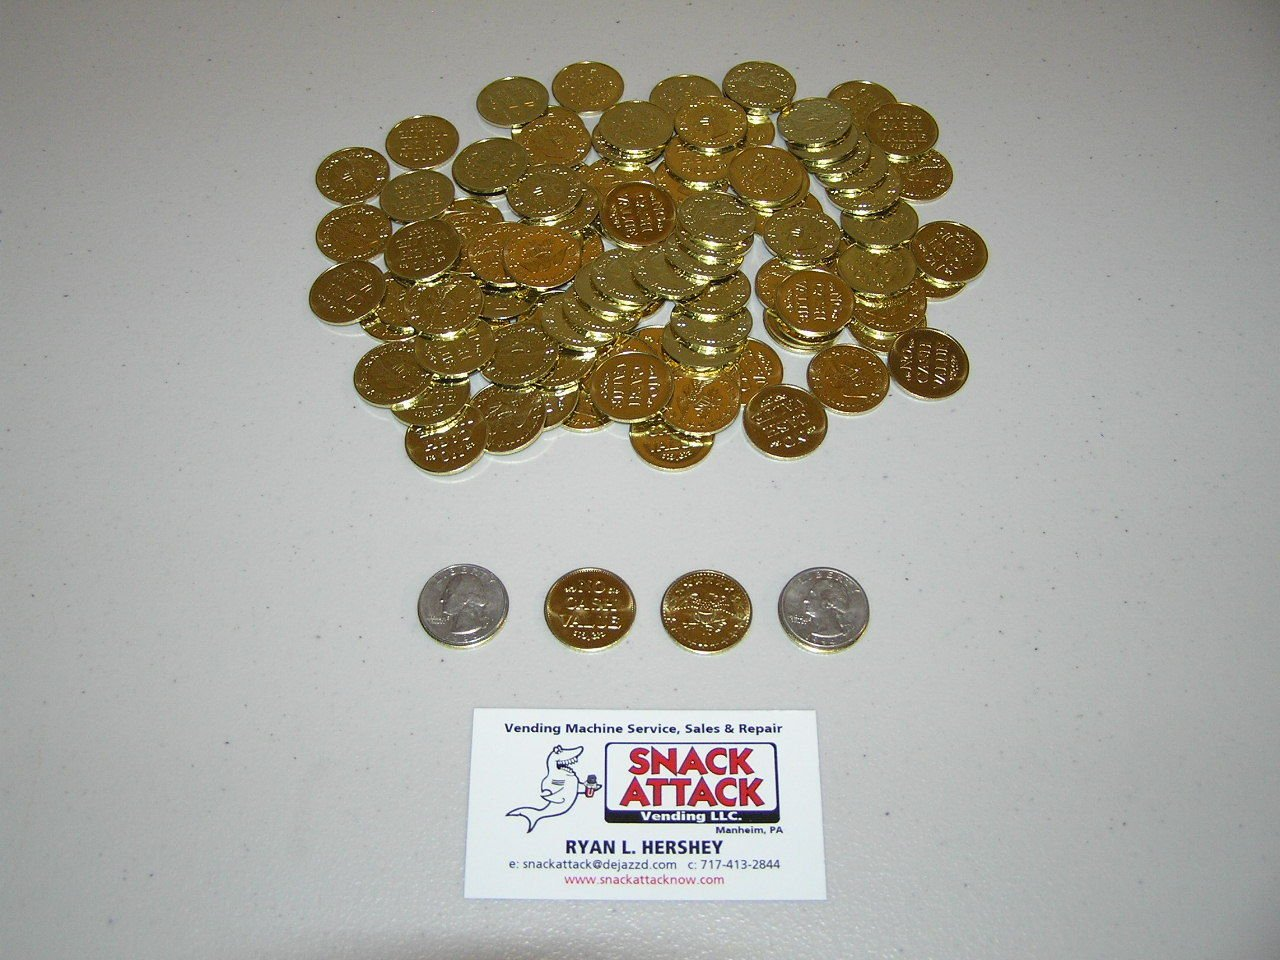 (100) Amusement Vending Machine 0.984 Tokens or Coins - Gold Plated /! by Snack Attack Vending